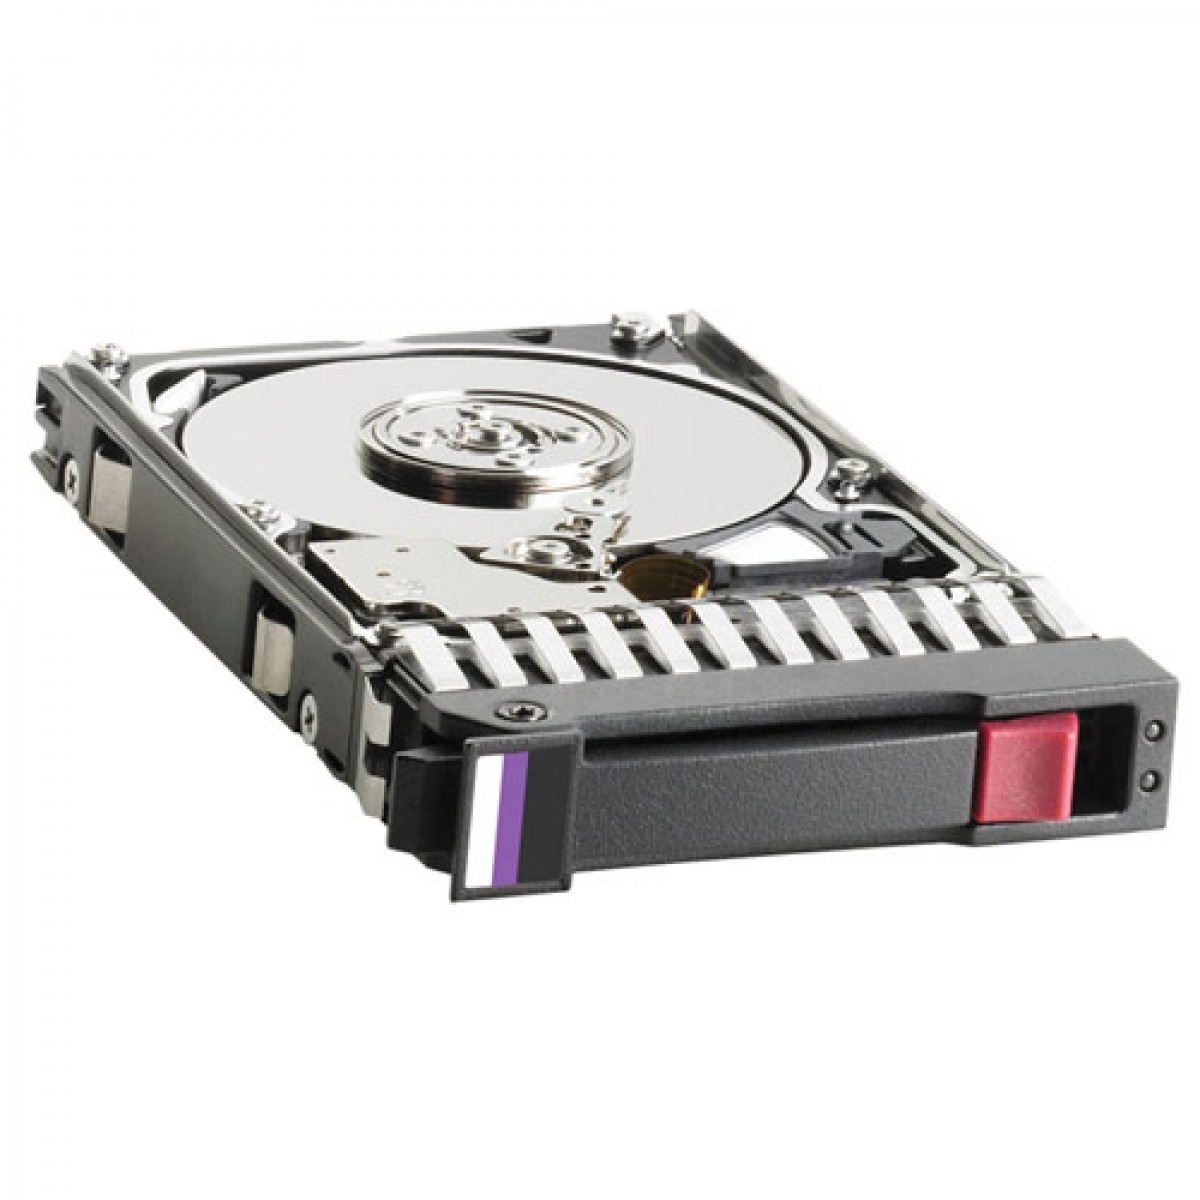 "Hewlett Packard Enterprise Hpe Single Port - Hard Drive - 146 Gb - Hot-swap - 2.5"" Sff - Sas - 10000 Rpm 431958-b21 - xep01"